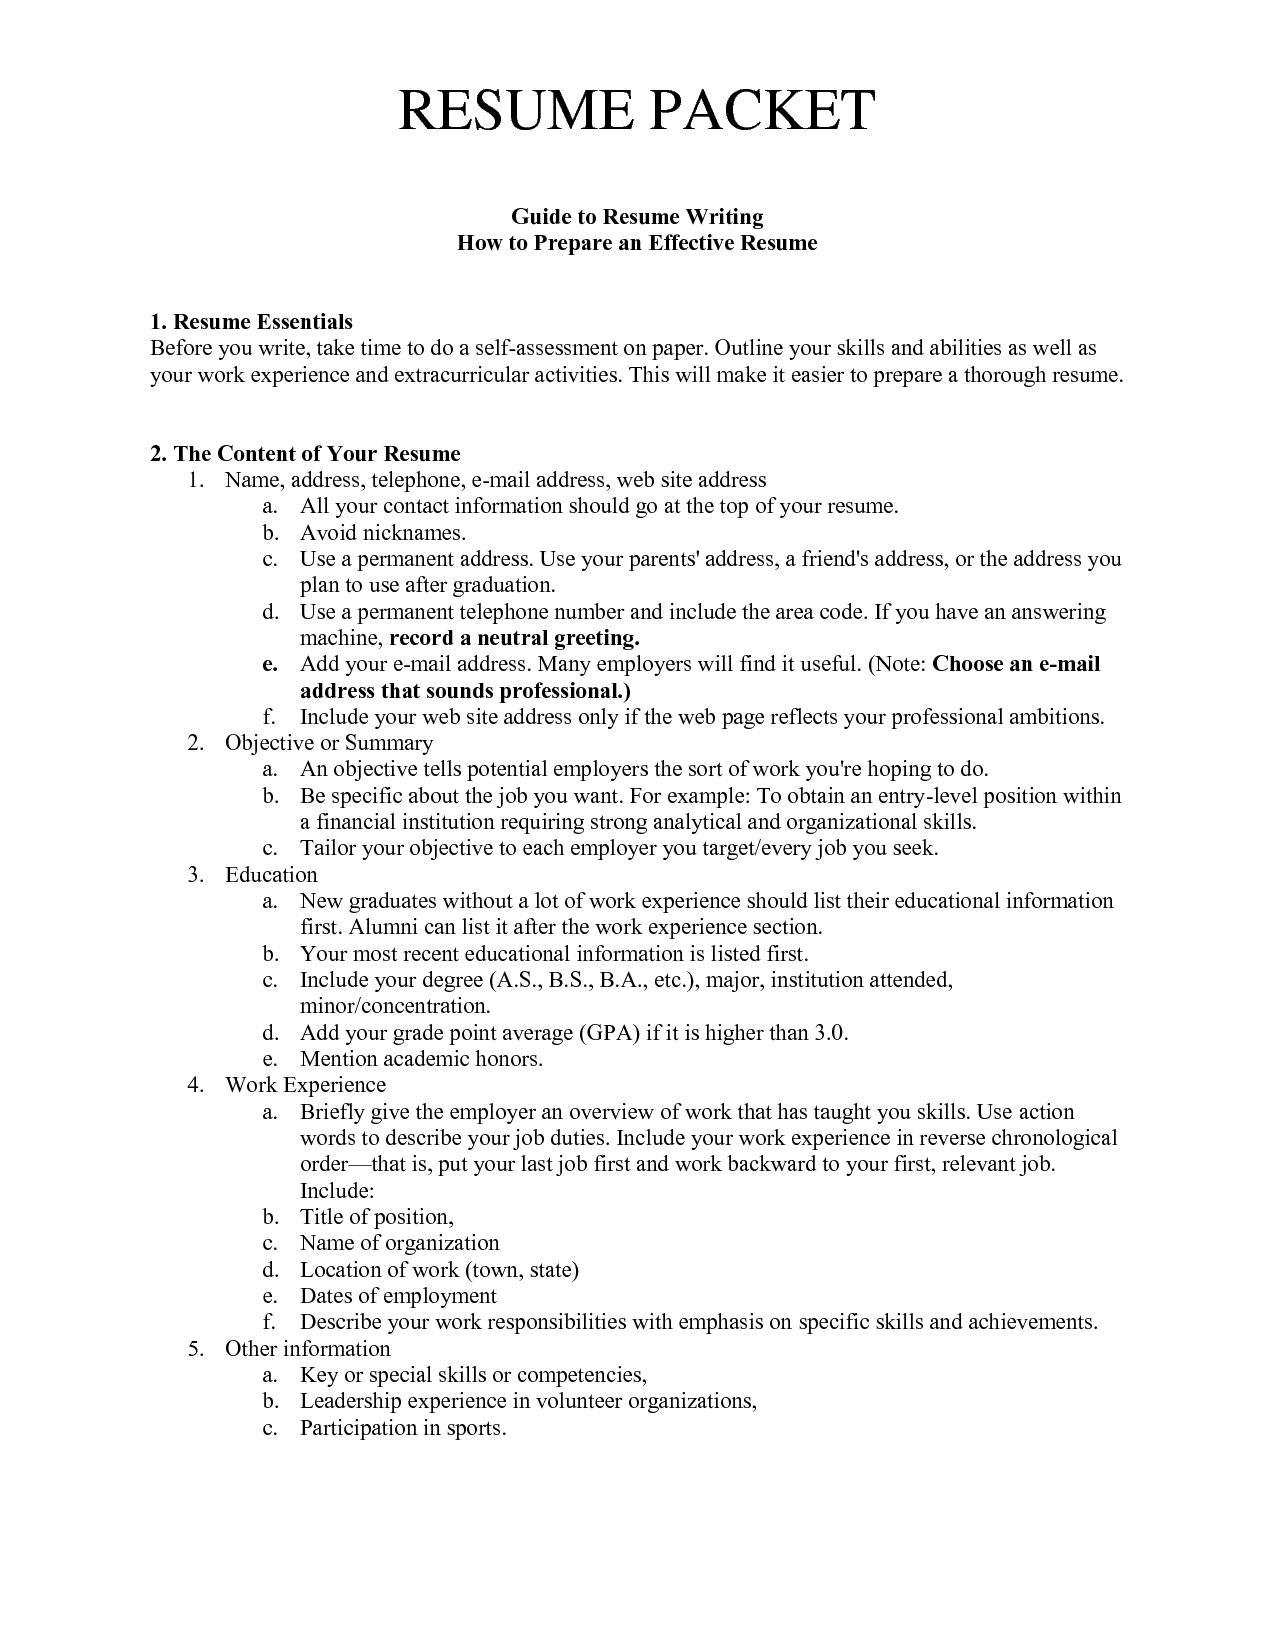 how to list extracurriculars on resume